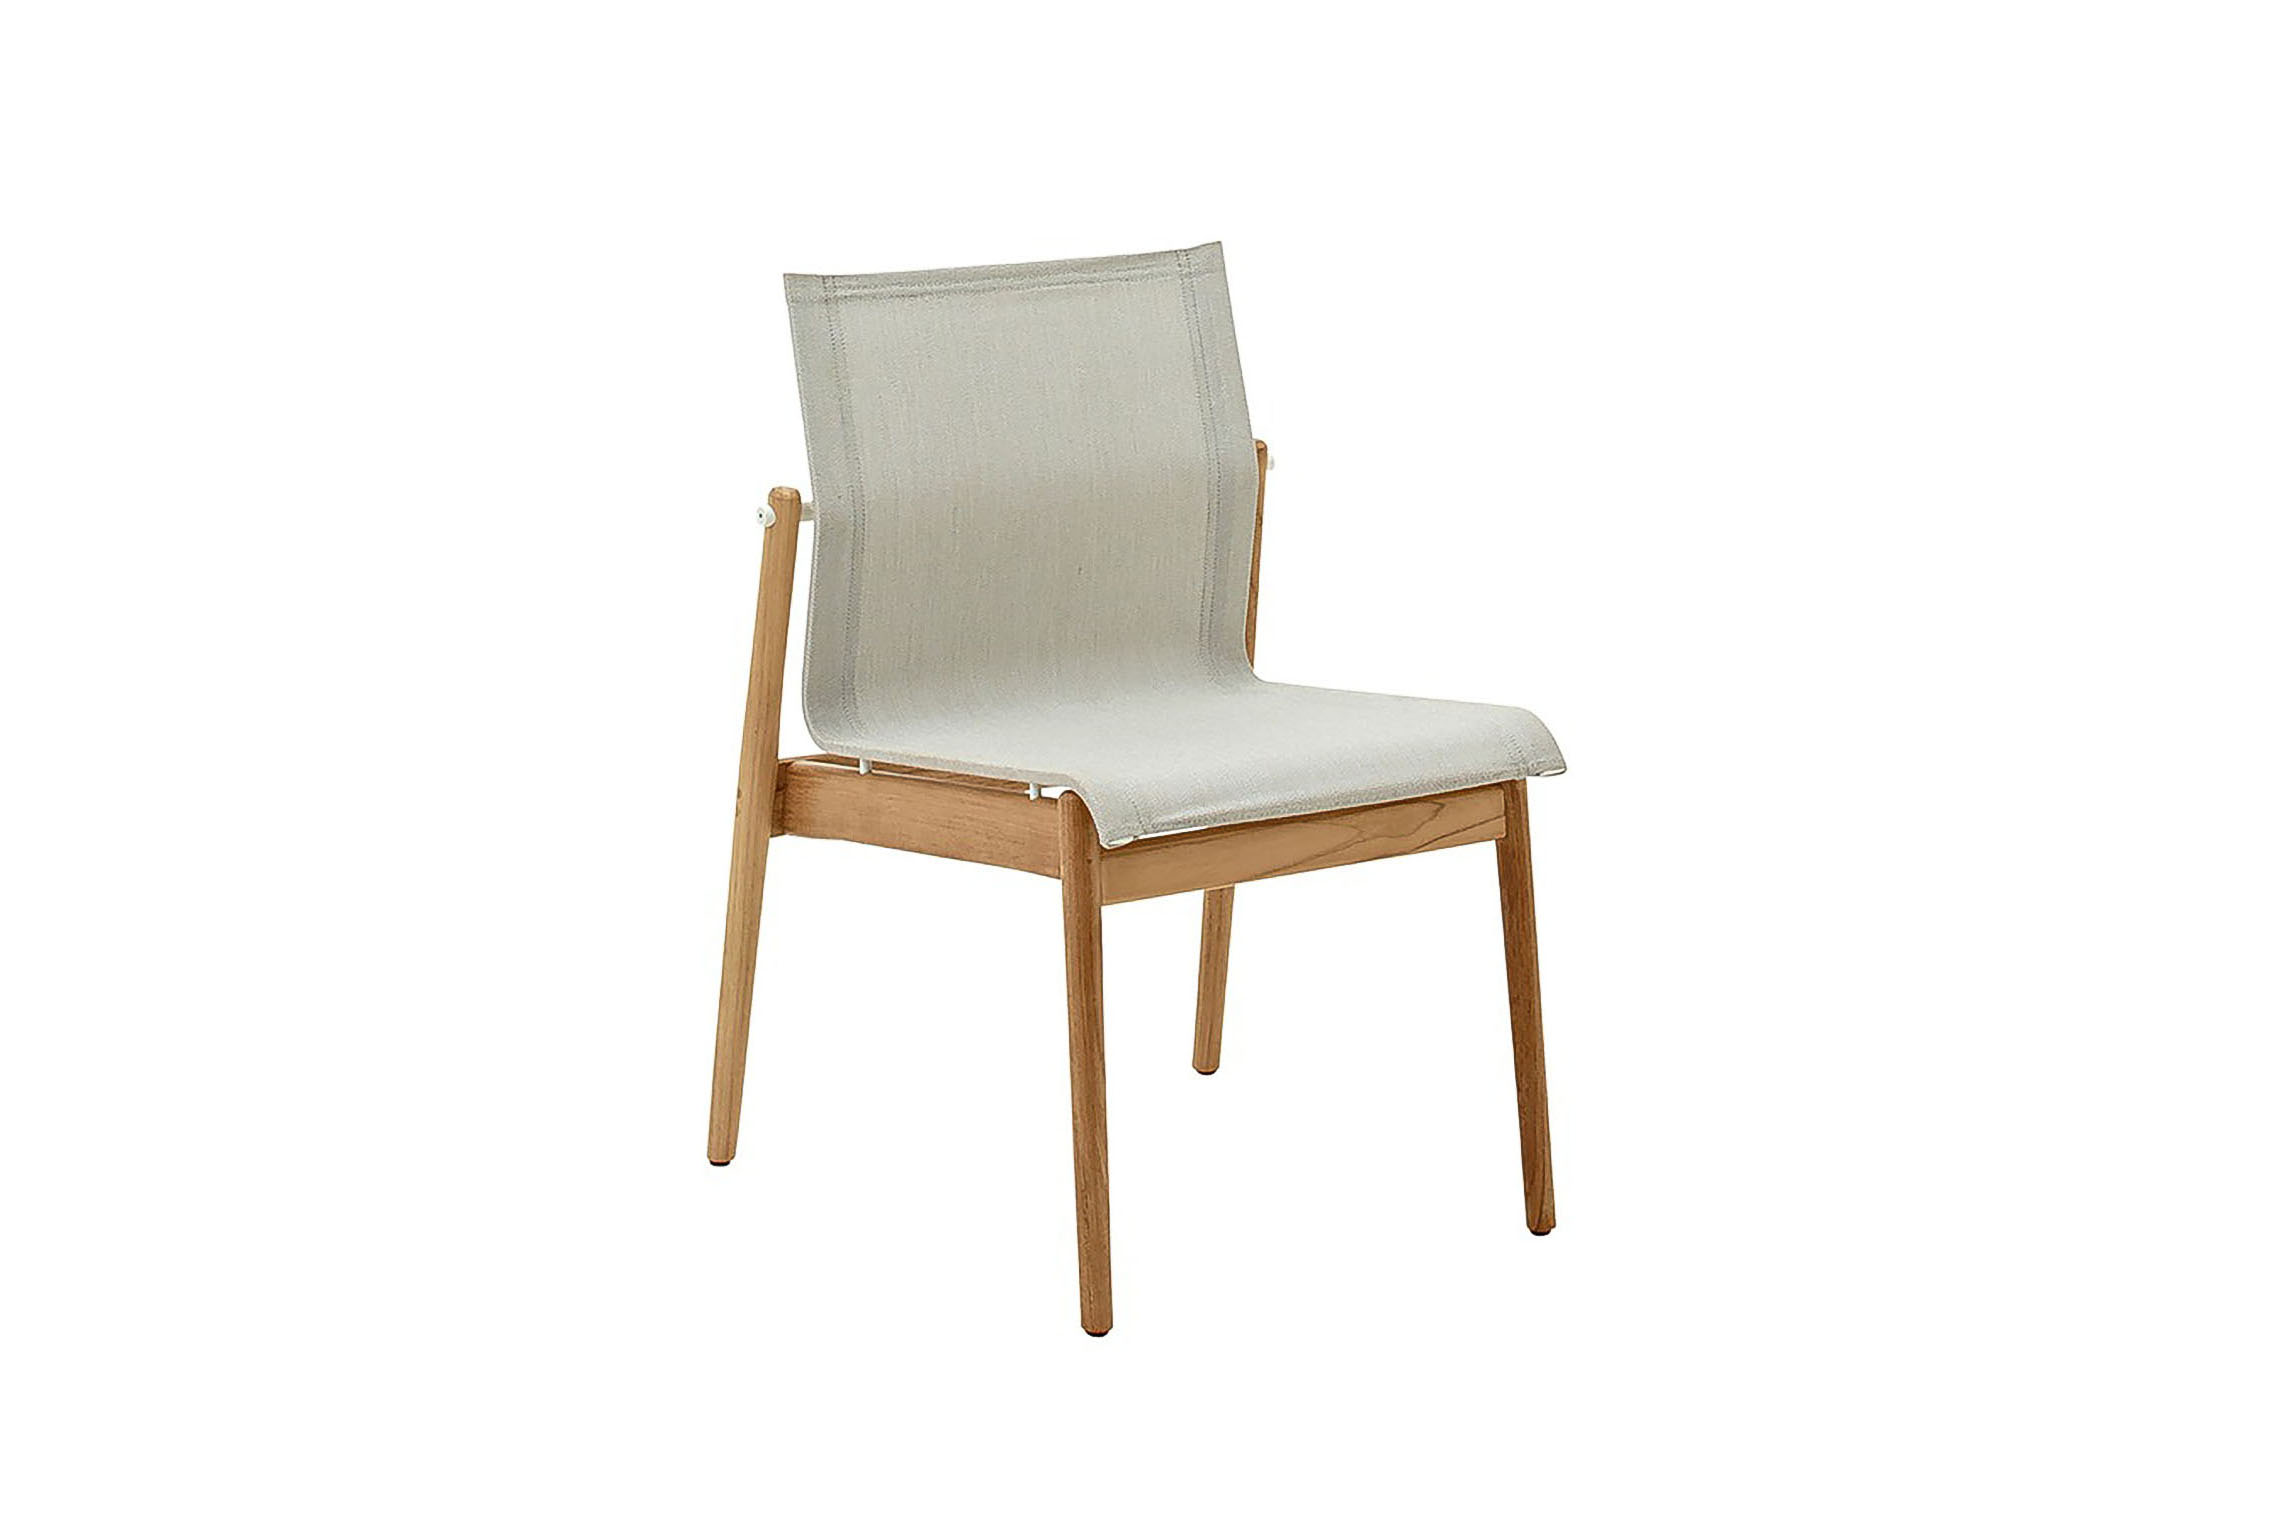 Gloster SWAY Stacking Chair